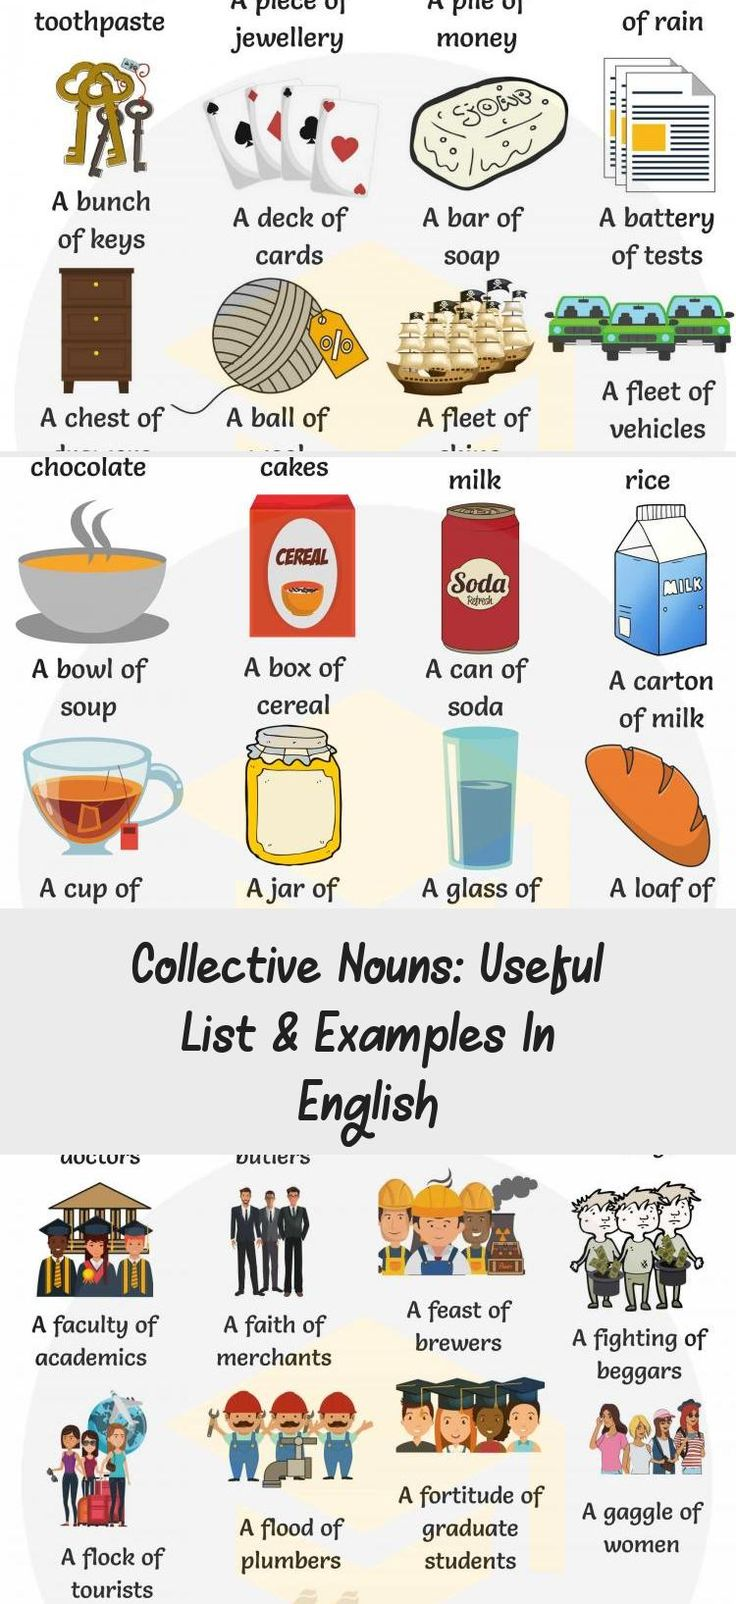 Collective Nouns Useful List & Examples in English 7 E